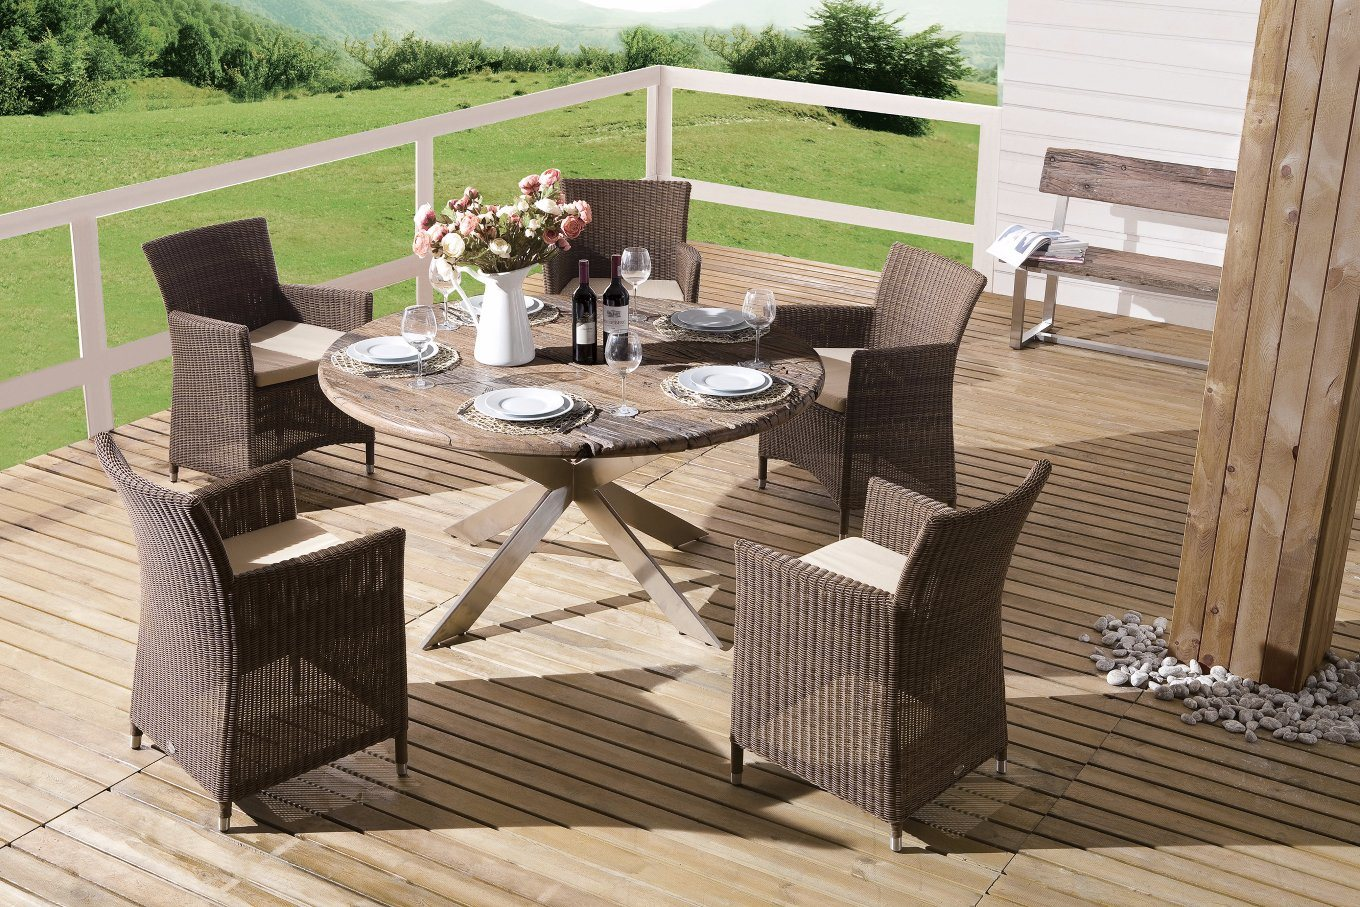 Outdoor Wicker Patio Furniture Auckland / Cancun Dining Set Garden Rattan Chairs Table (J375R)